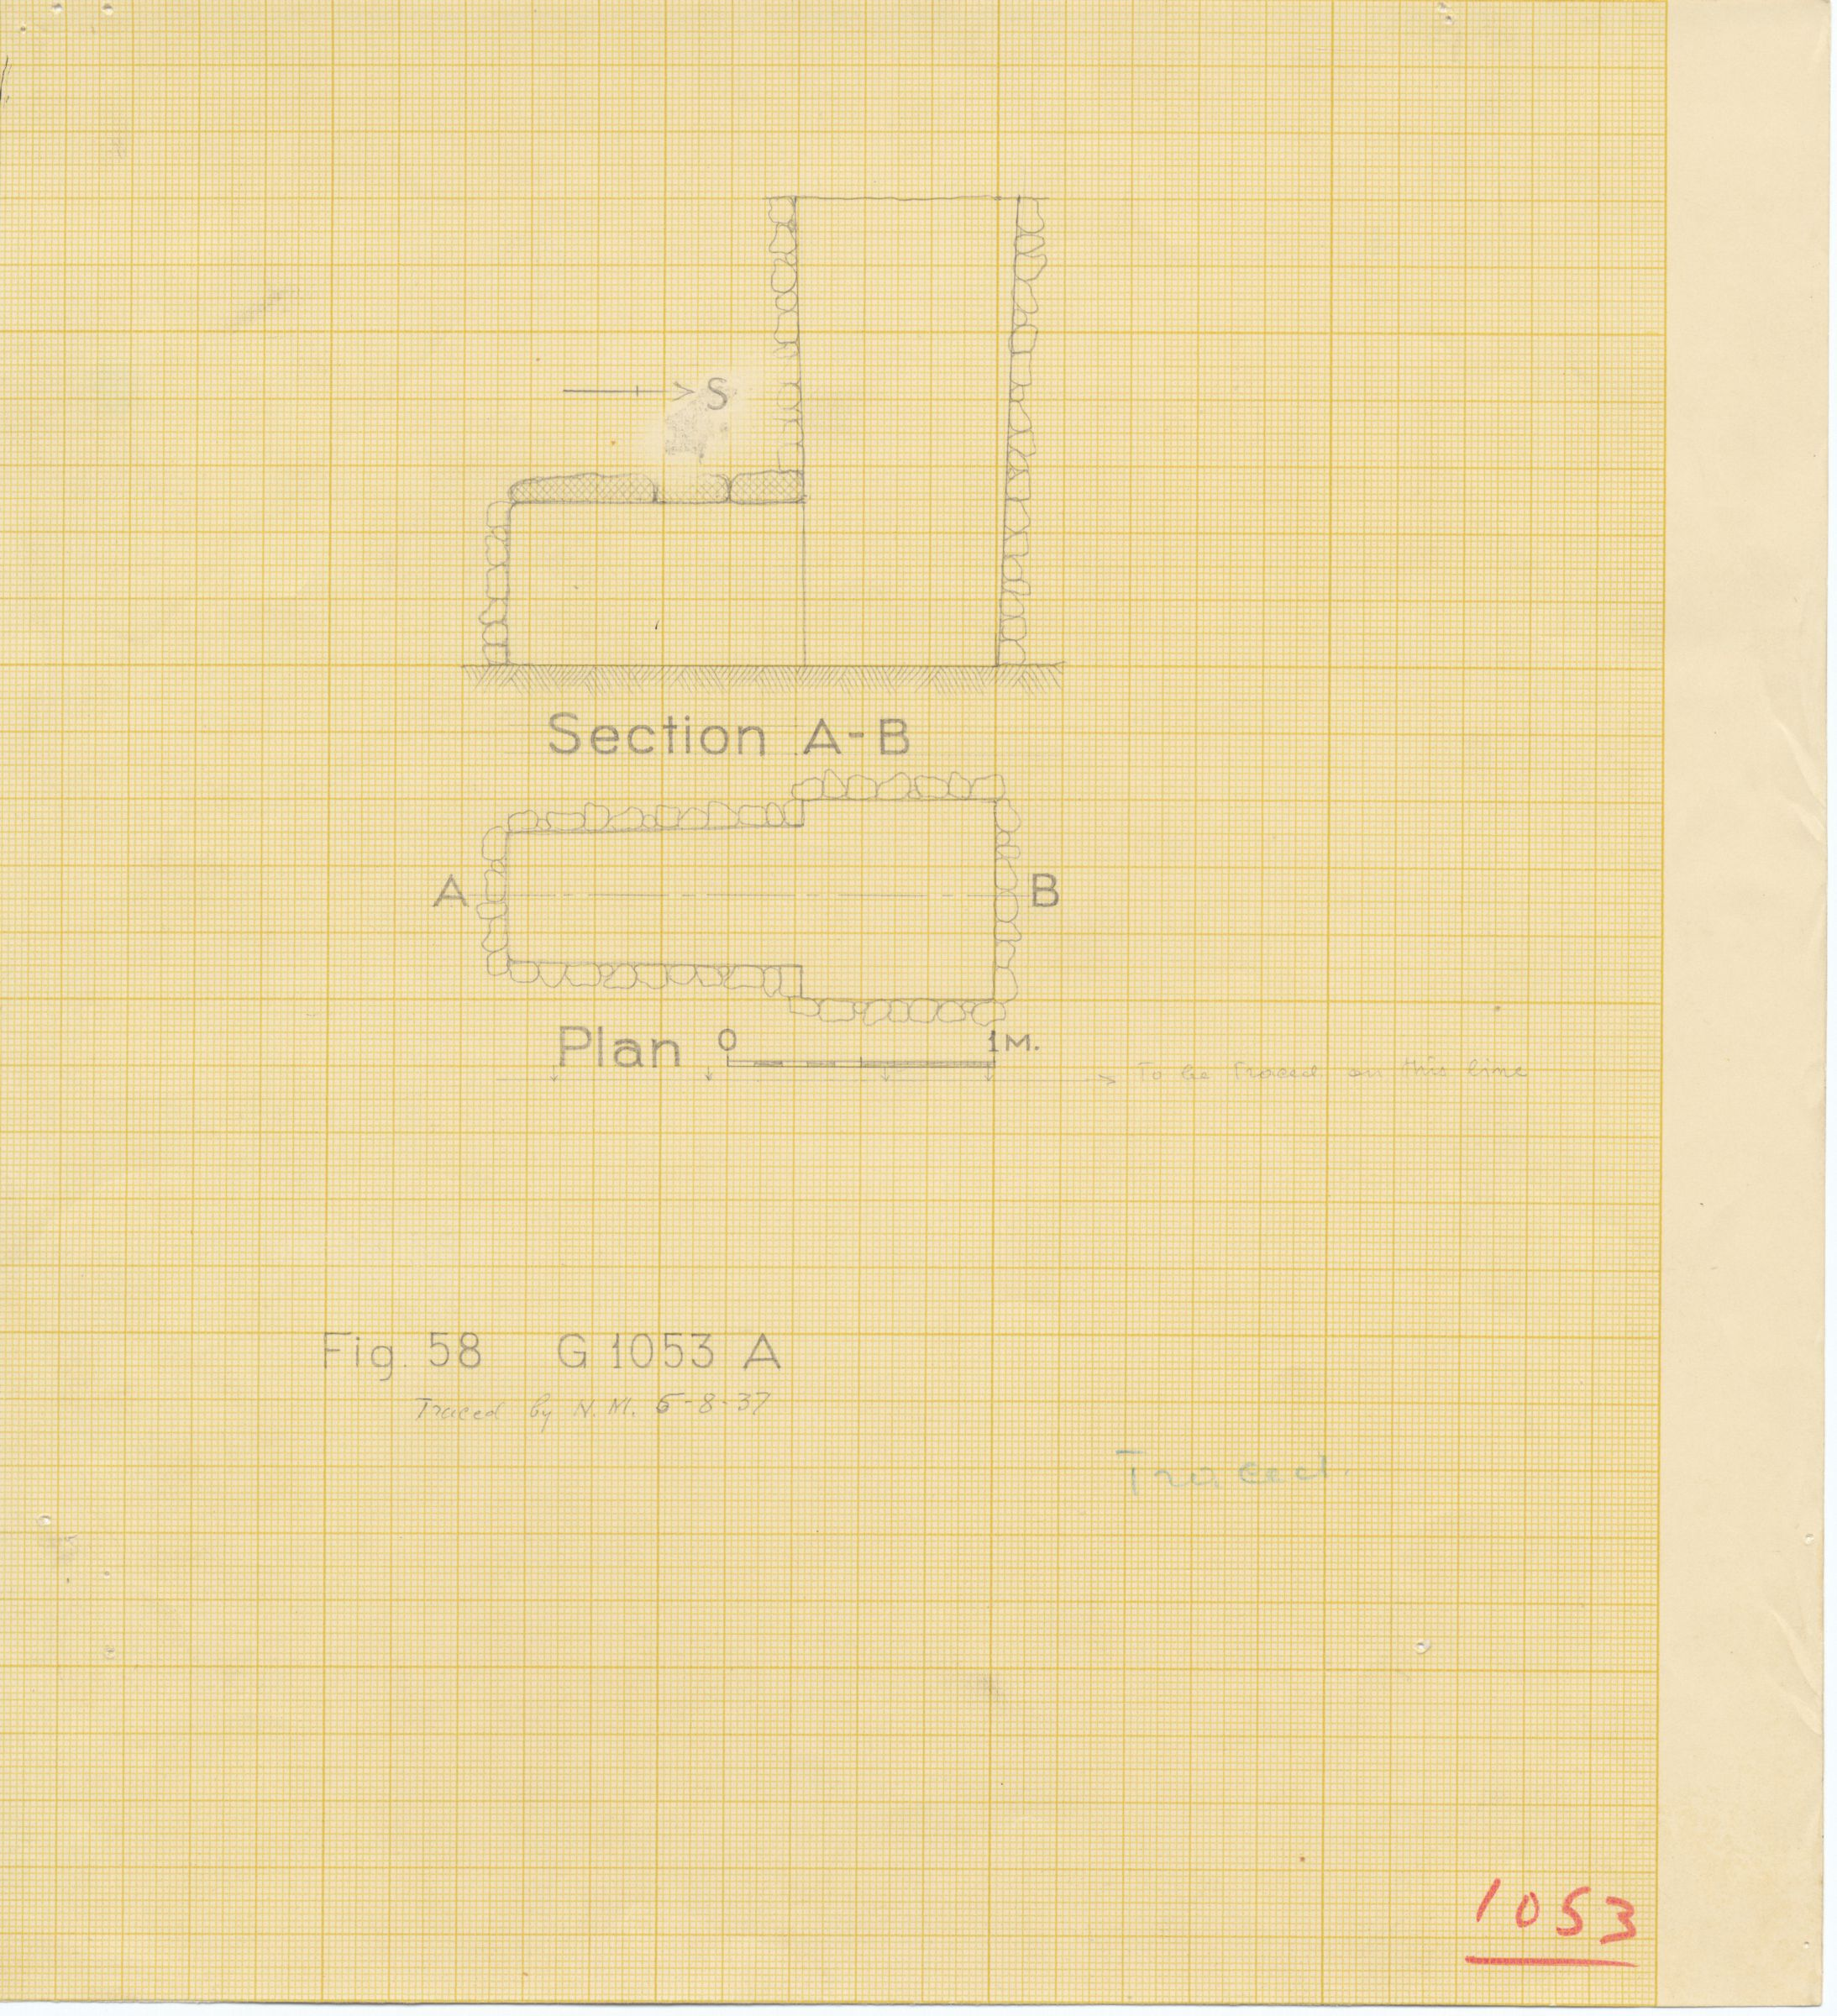 Maps and plans: G 1053, Shaft A